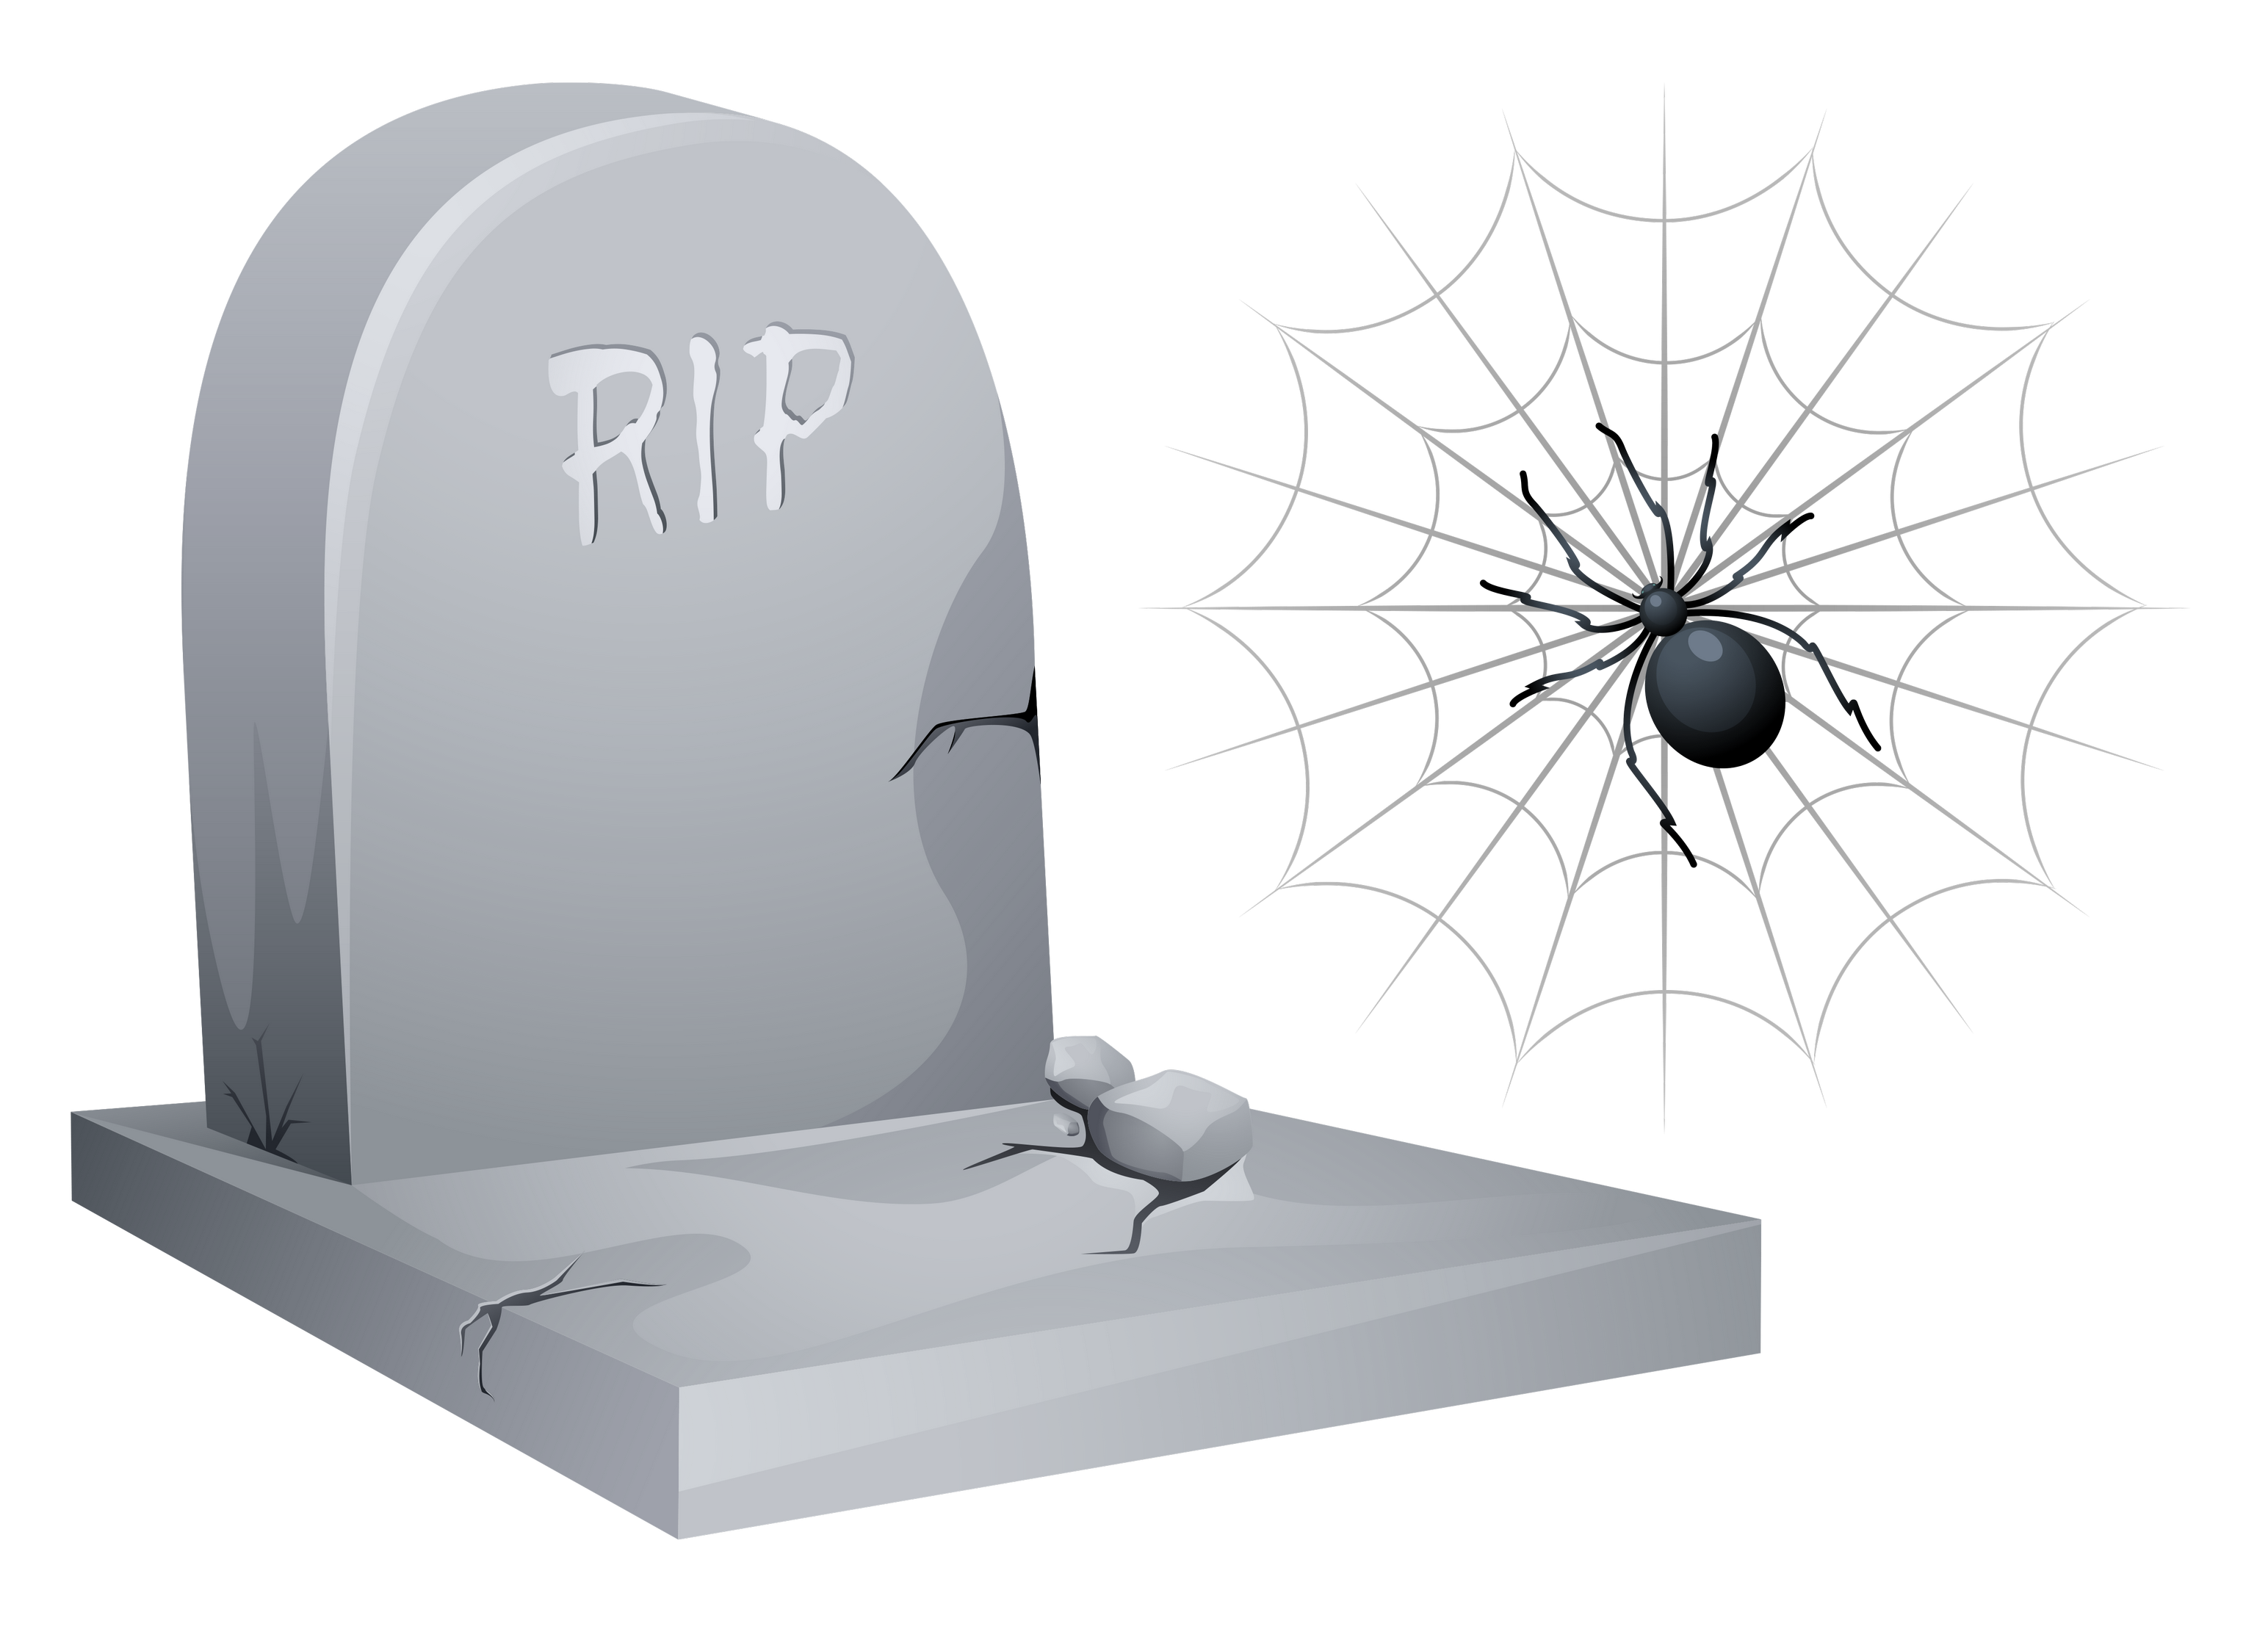 Halloween clipart tombstone vector free download Halloween RIP Tombstone with Spider and Web Clipart | Gallery ... vector free download